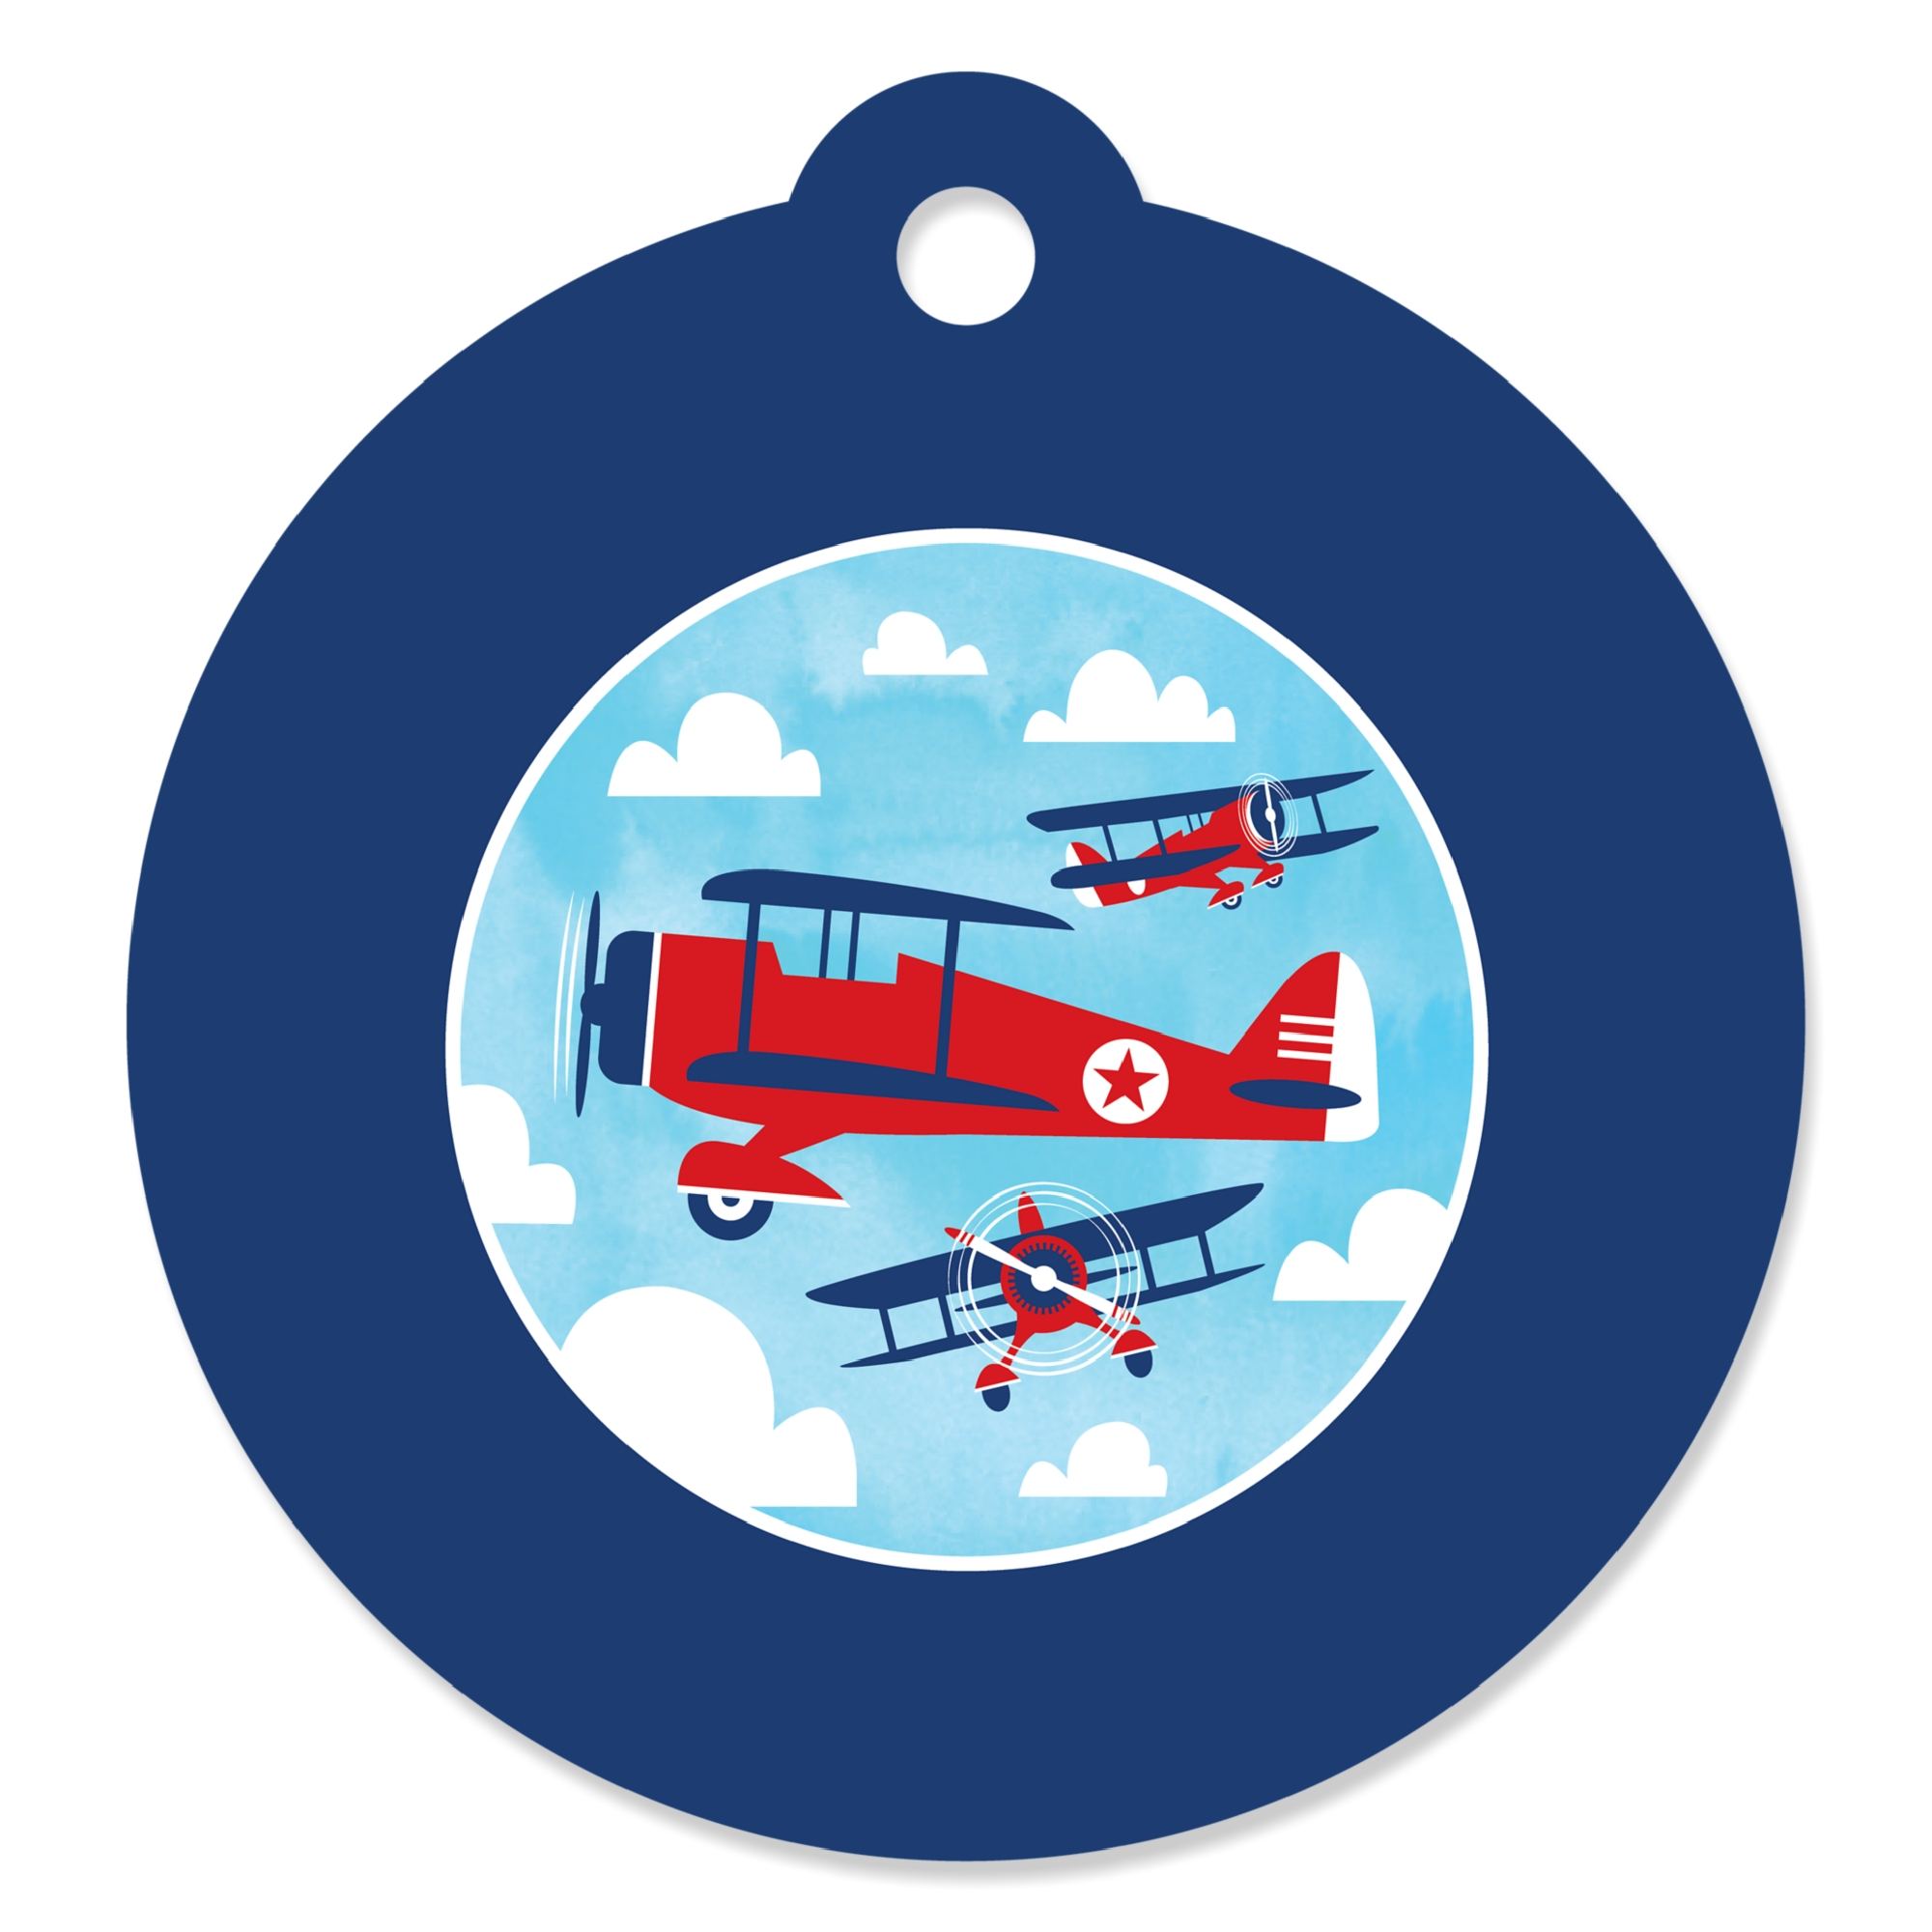 Taking Flight - Airplane - Vintage Plane Baby Shower or Birthday Party Favor Gift Tags (Set of 20)